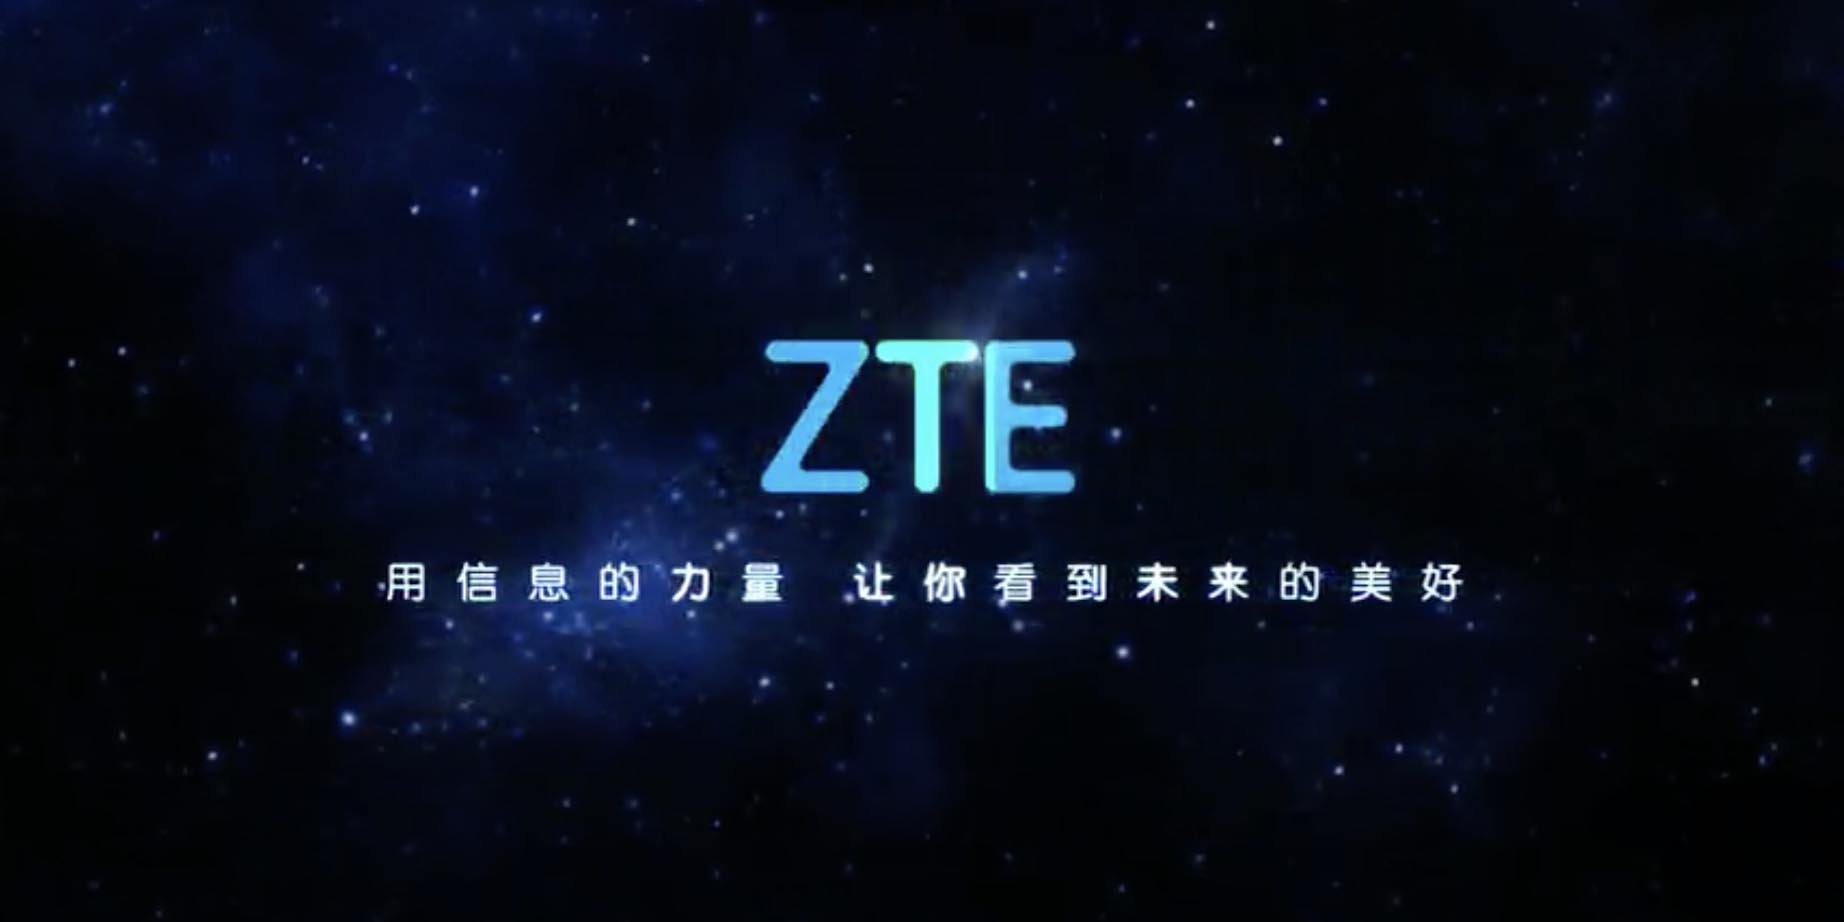 photo image Department of Commerce bans U.S. firms from selling to ZTE for 7 years